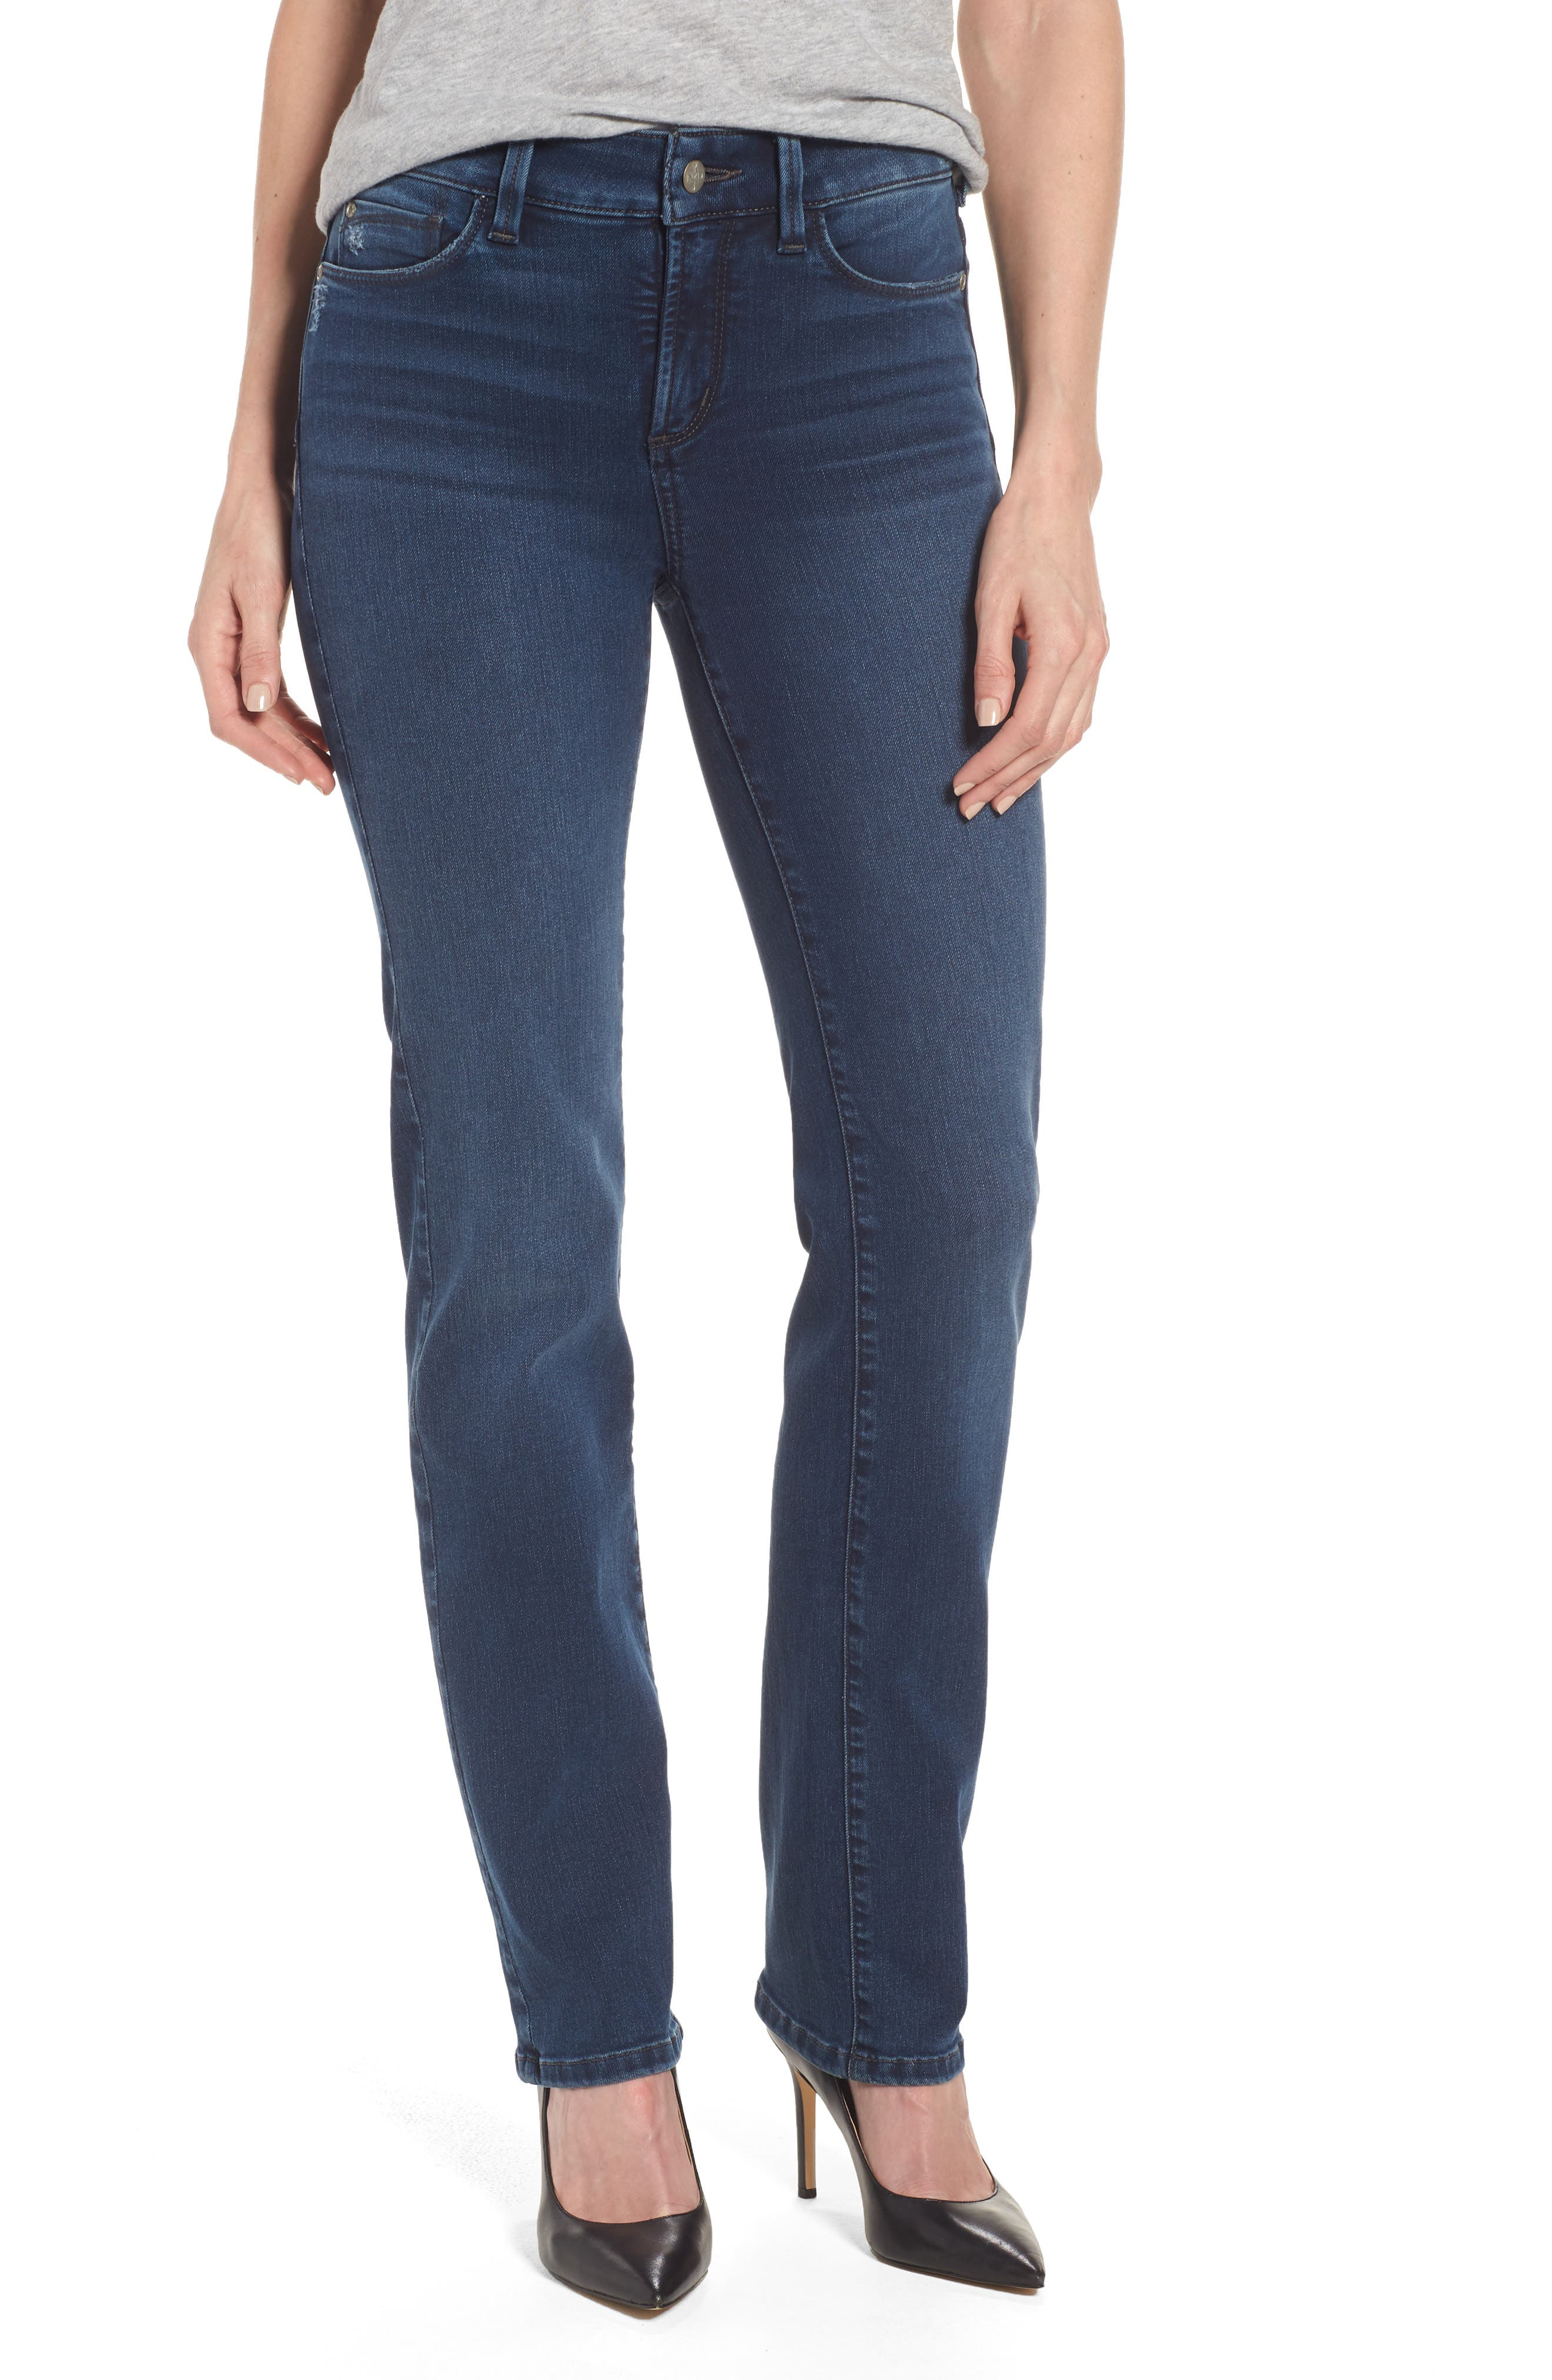 Marilyn Stretch Straight Leg Jeans,                             Main thumbnail 1, color,                             406